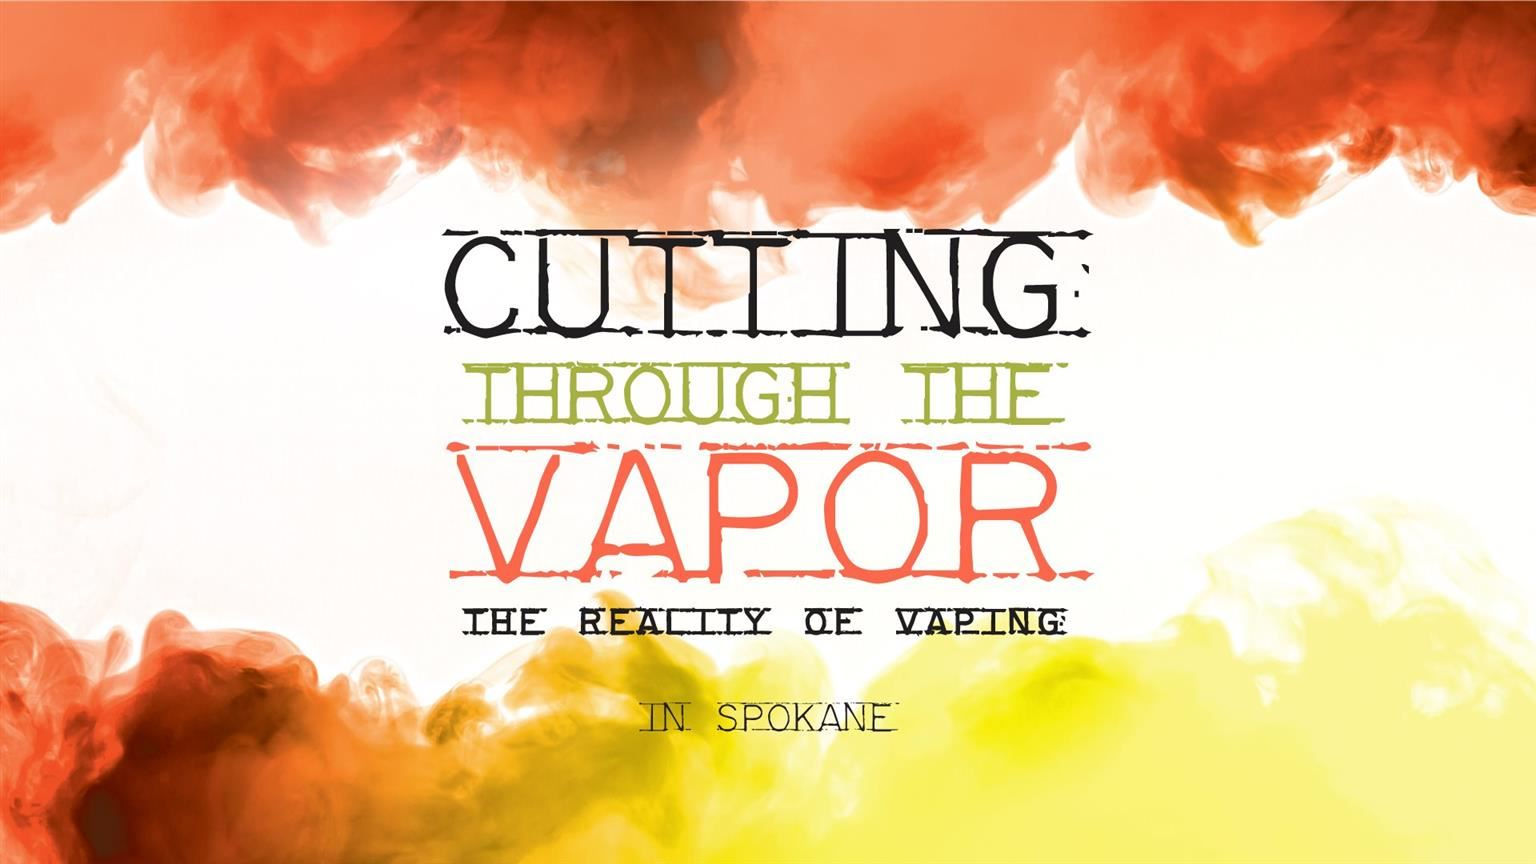 Cutting Through the Vapor: The Reality of Vaping in Spokane